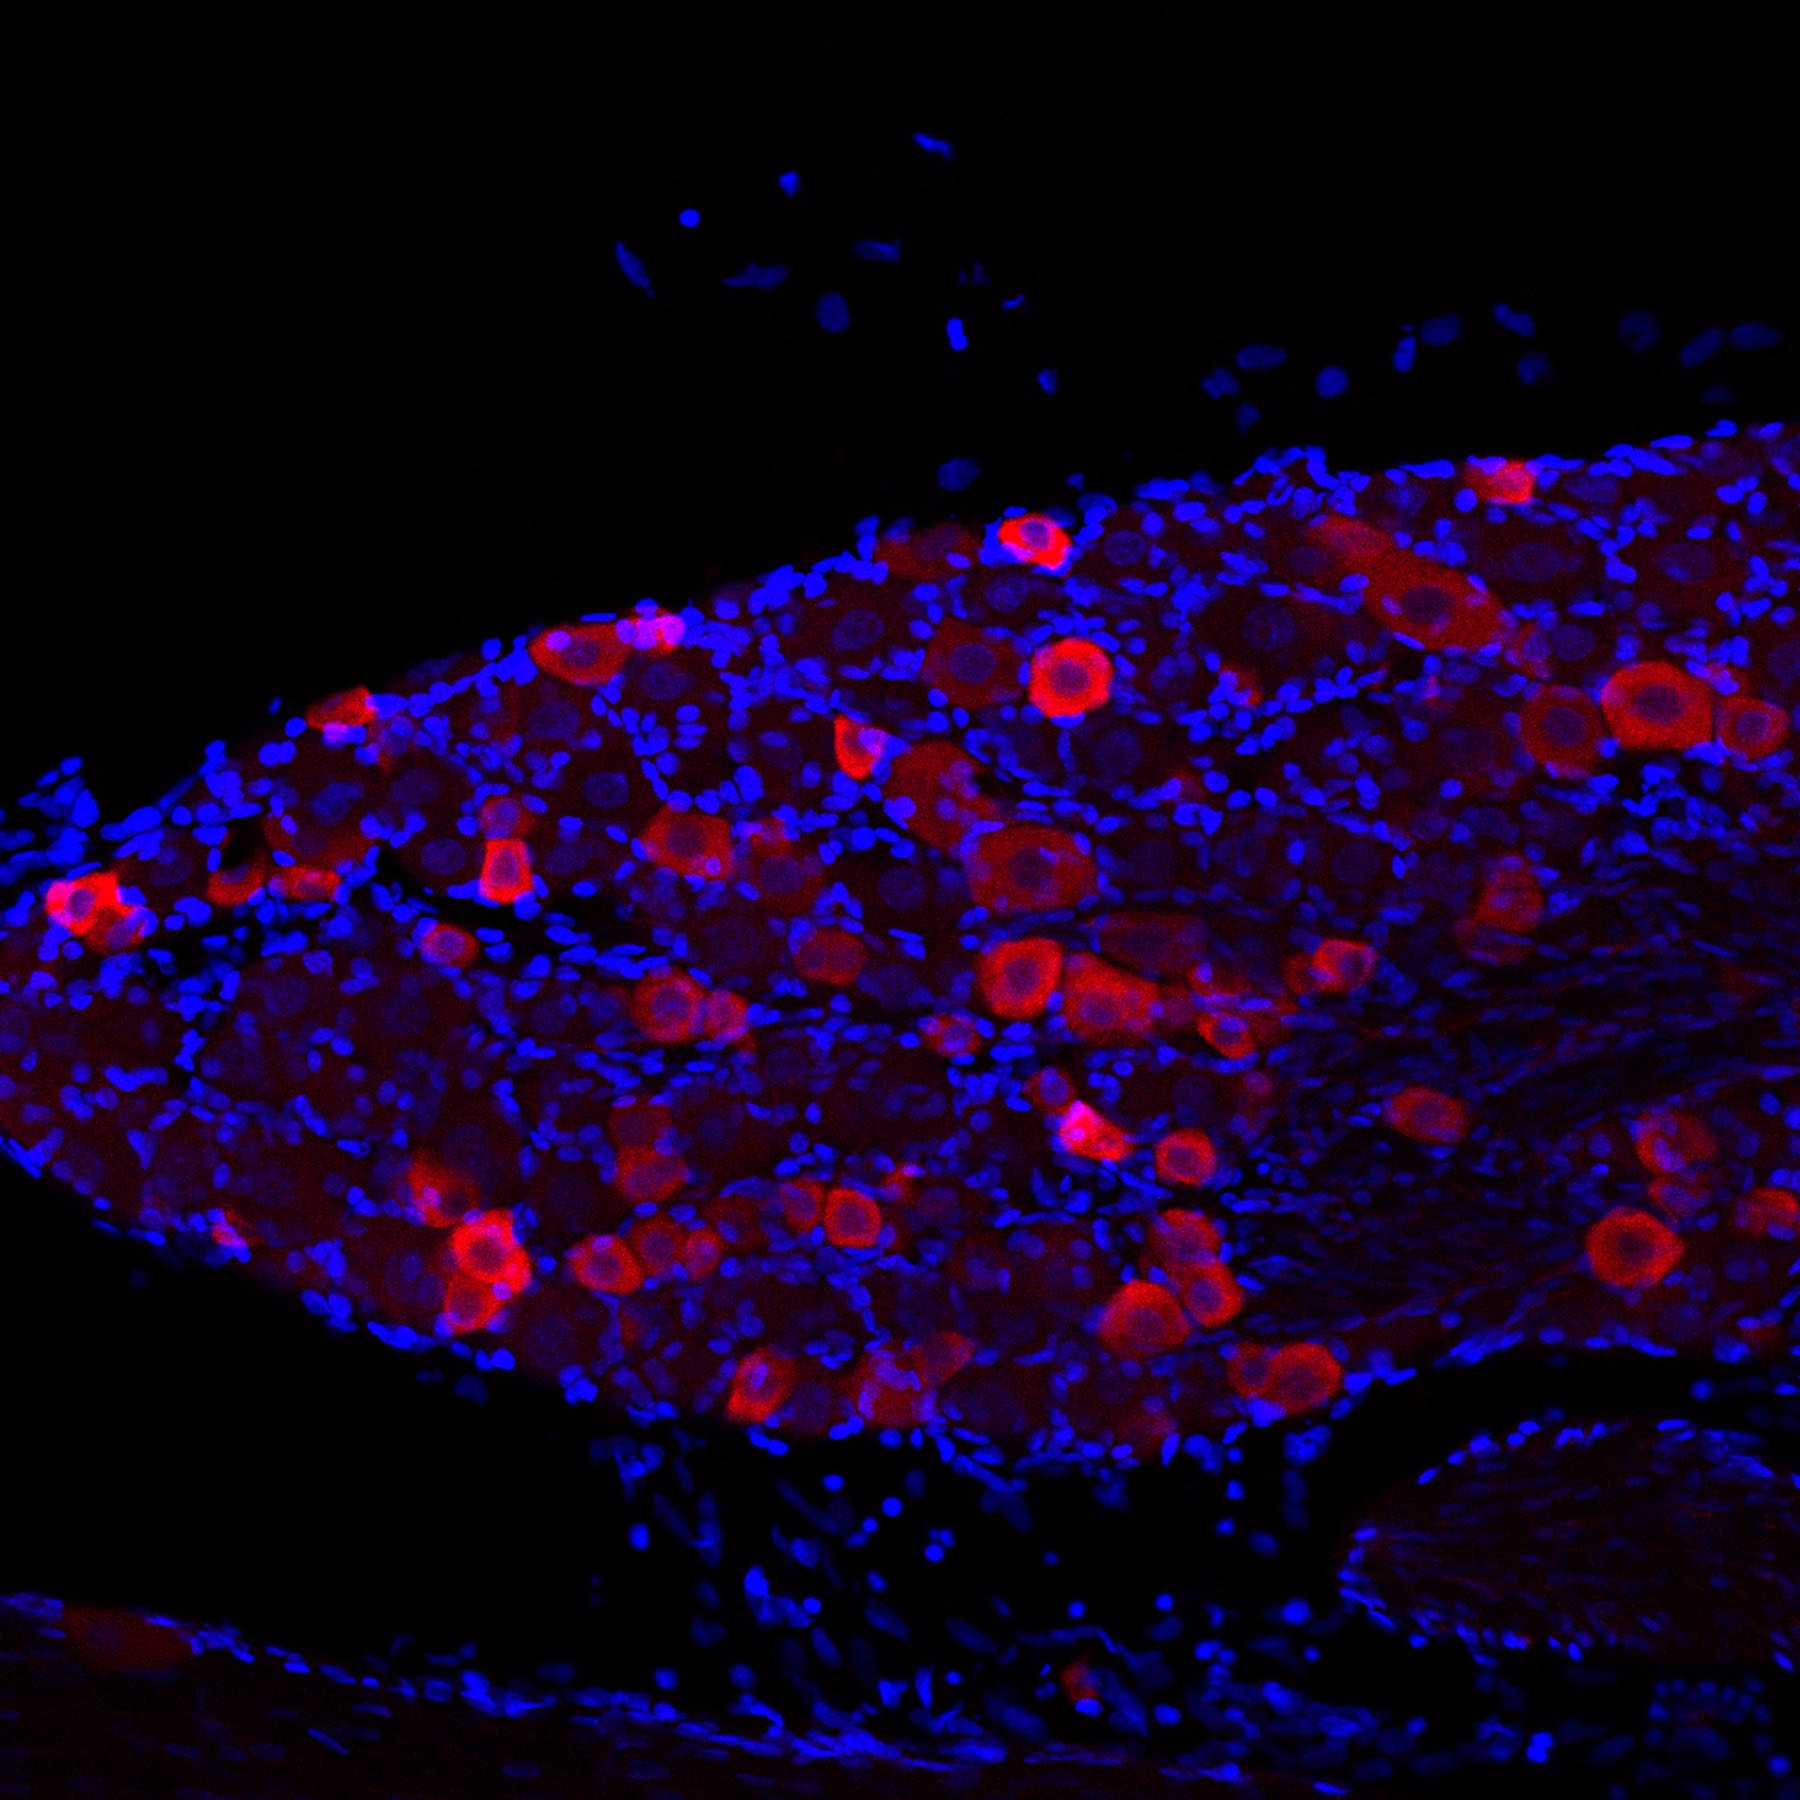 TRPV1 staining of mouse inferior olive using Cy3-conjugated donkey anti-rabbit secondary antibodies (red color) and DAPI (blue) as a nuclear counterstain.